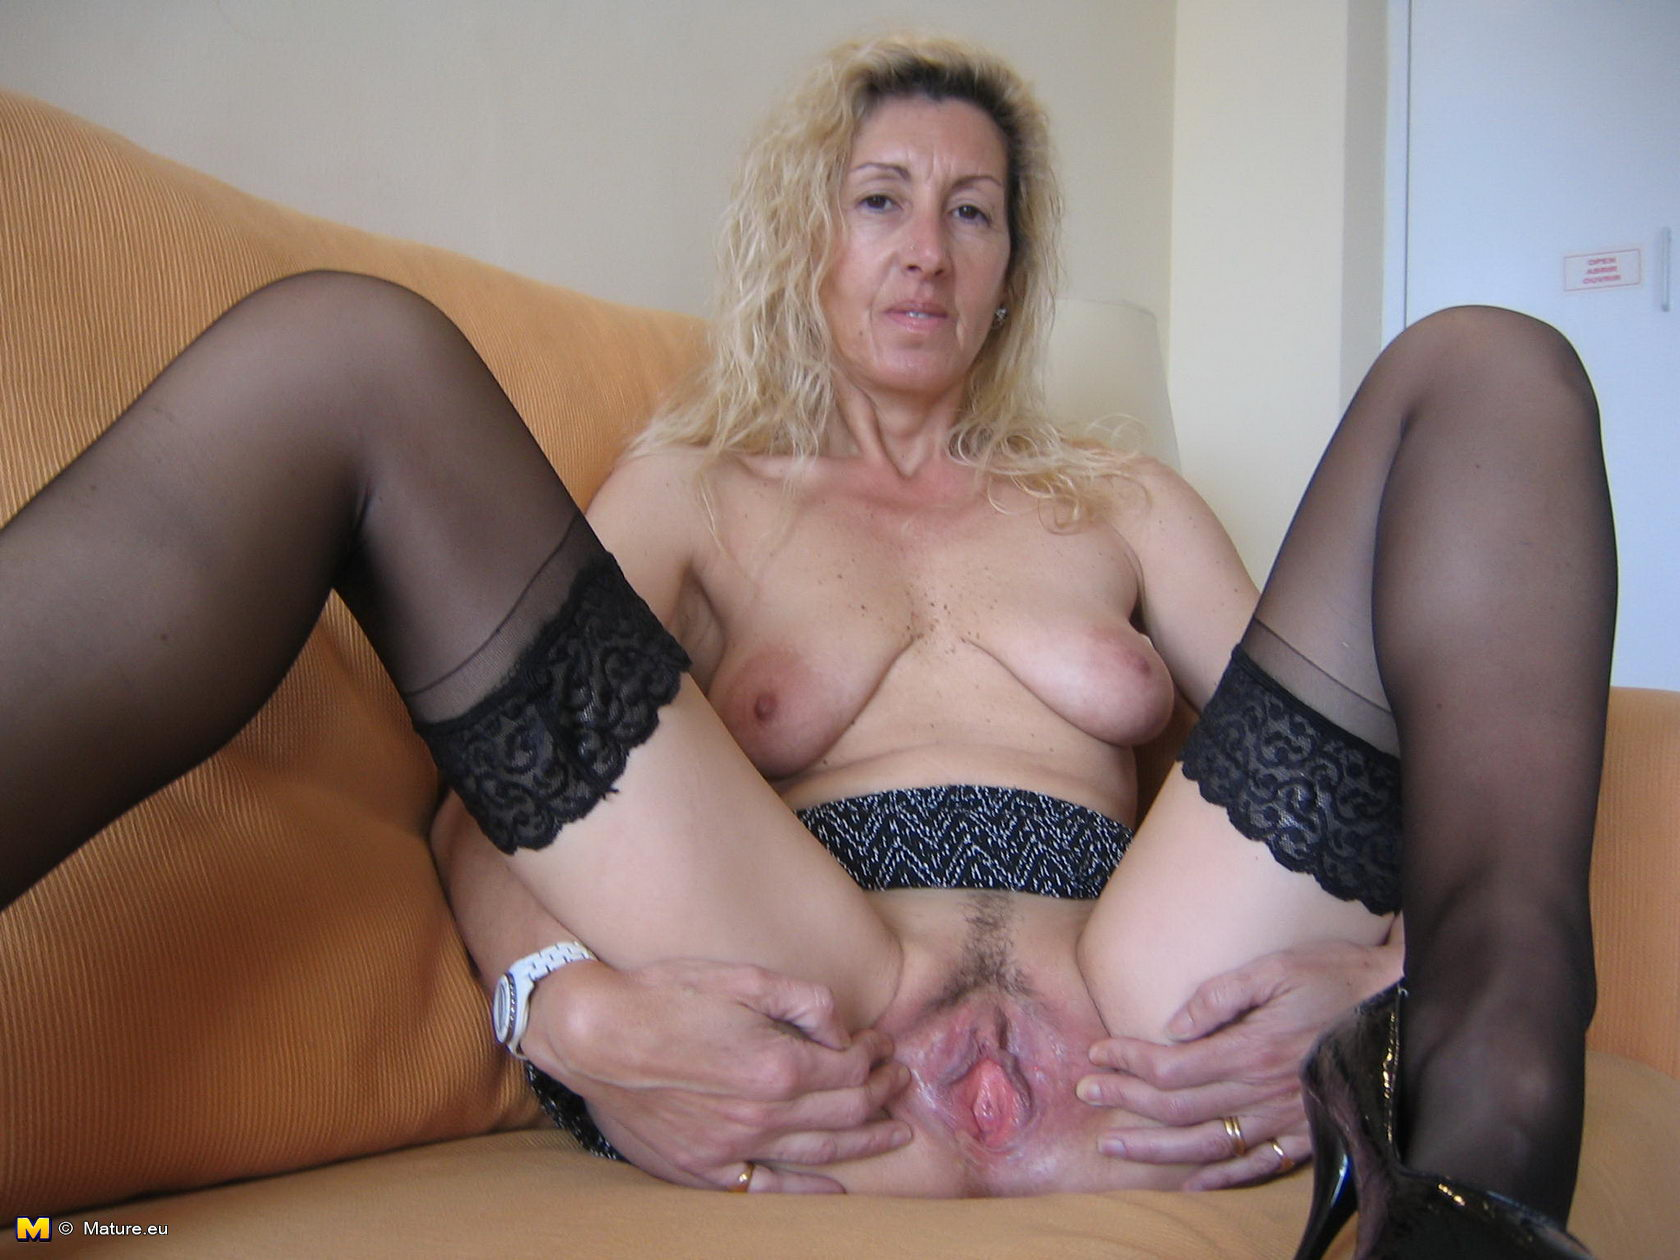 Free mature slut sex clips